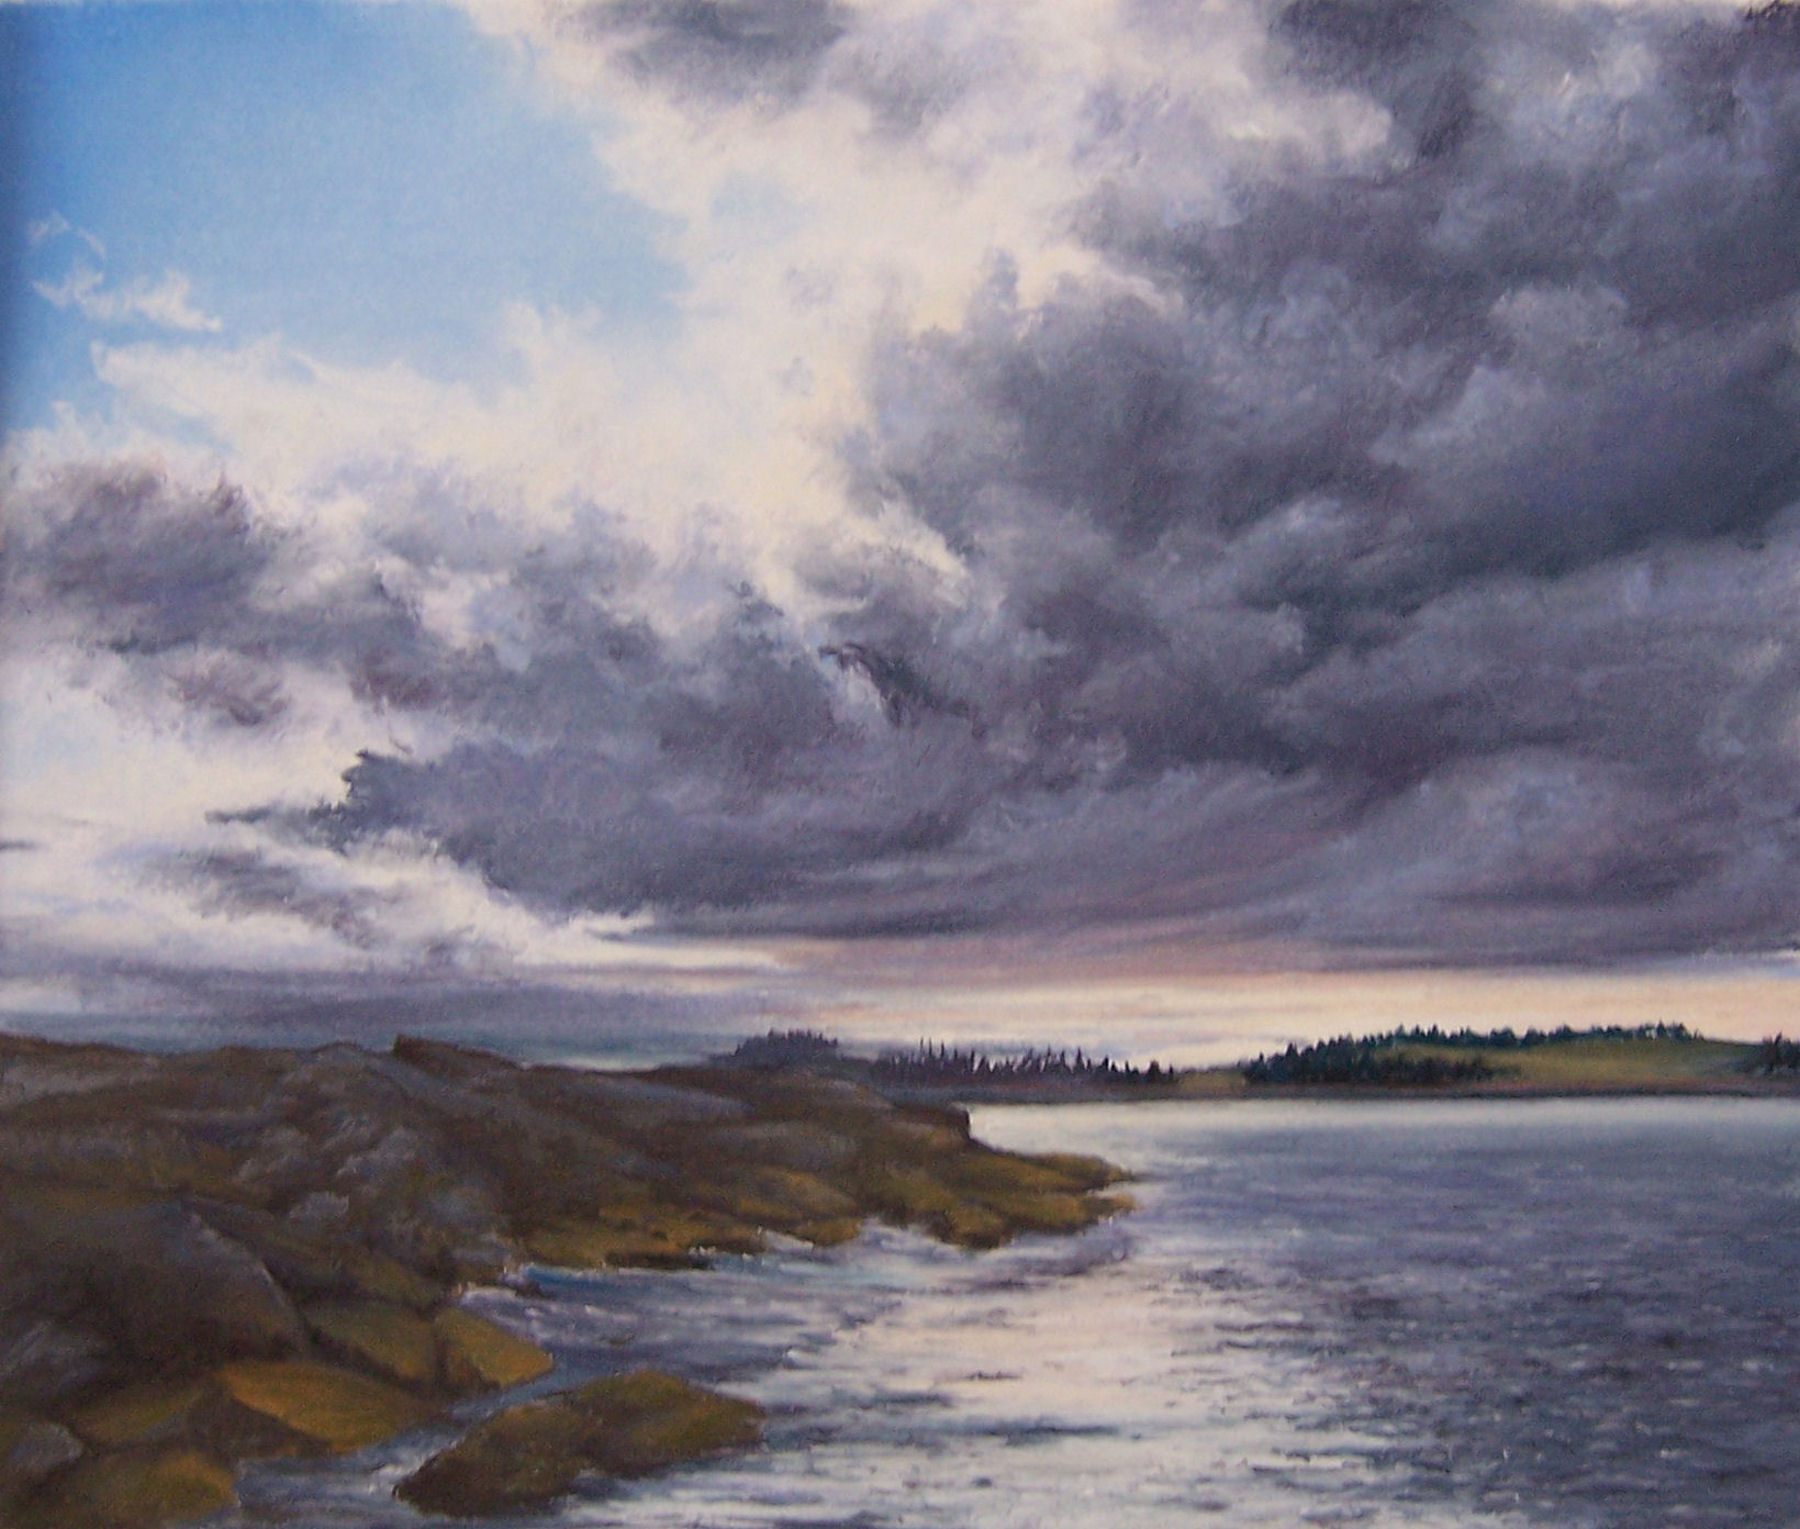 storm-clouds-over-davis-island-13-x-16-sold-giclee-reproductions-available